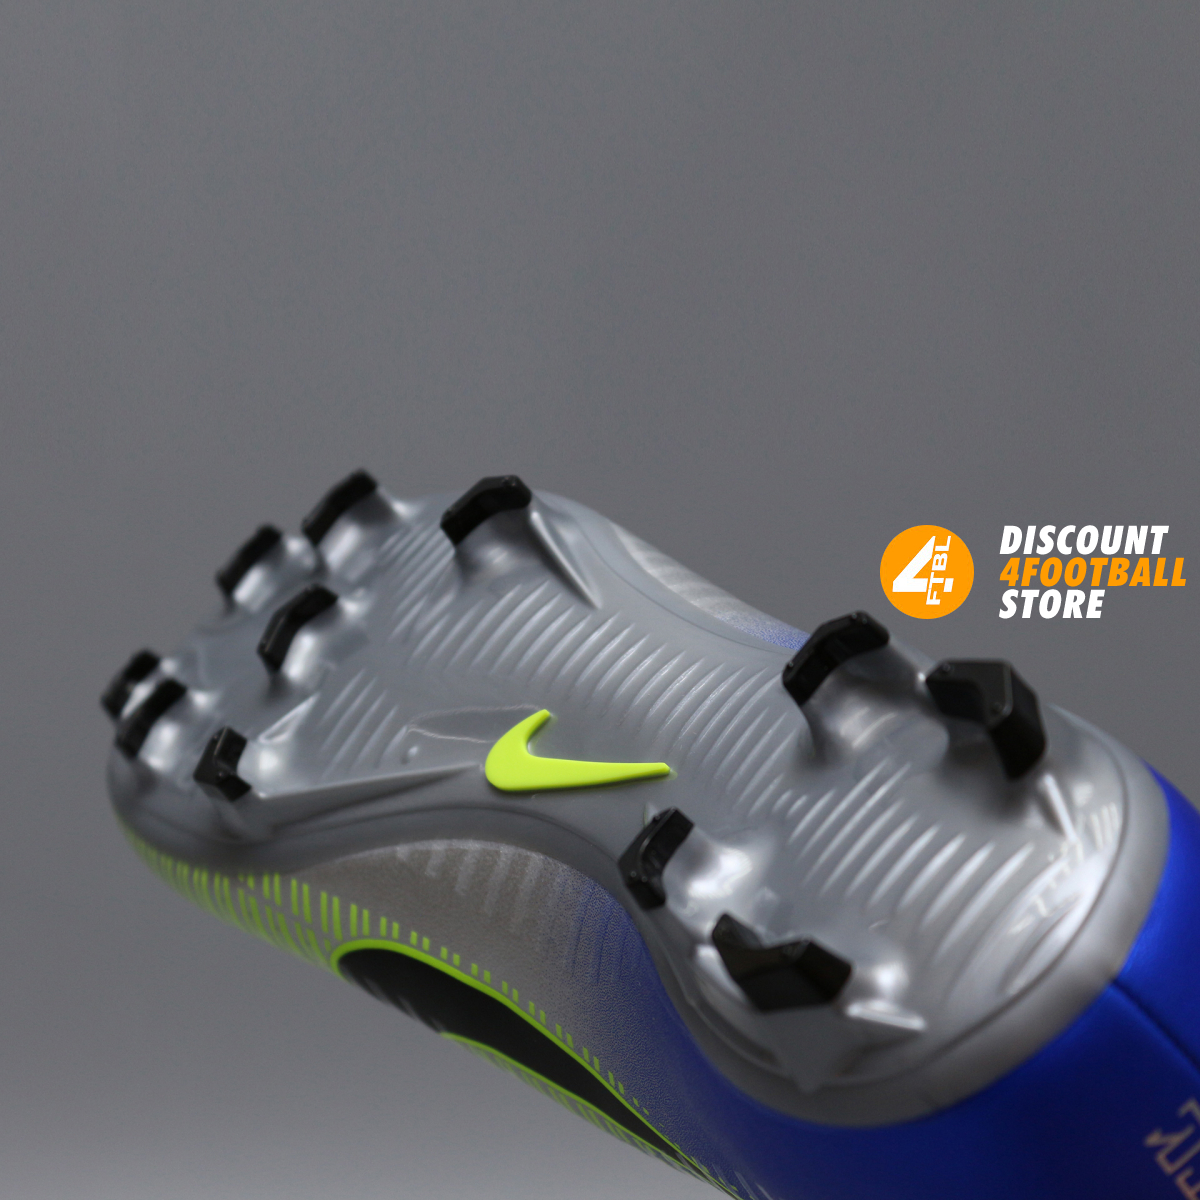 d6e8ce808334 ... Бутсы nike mercurial victory NEYMAR-R9 921509-407 Chrome Blue 3 ...